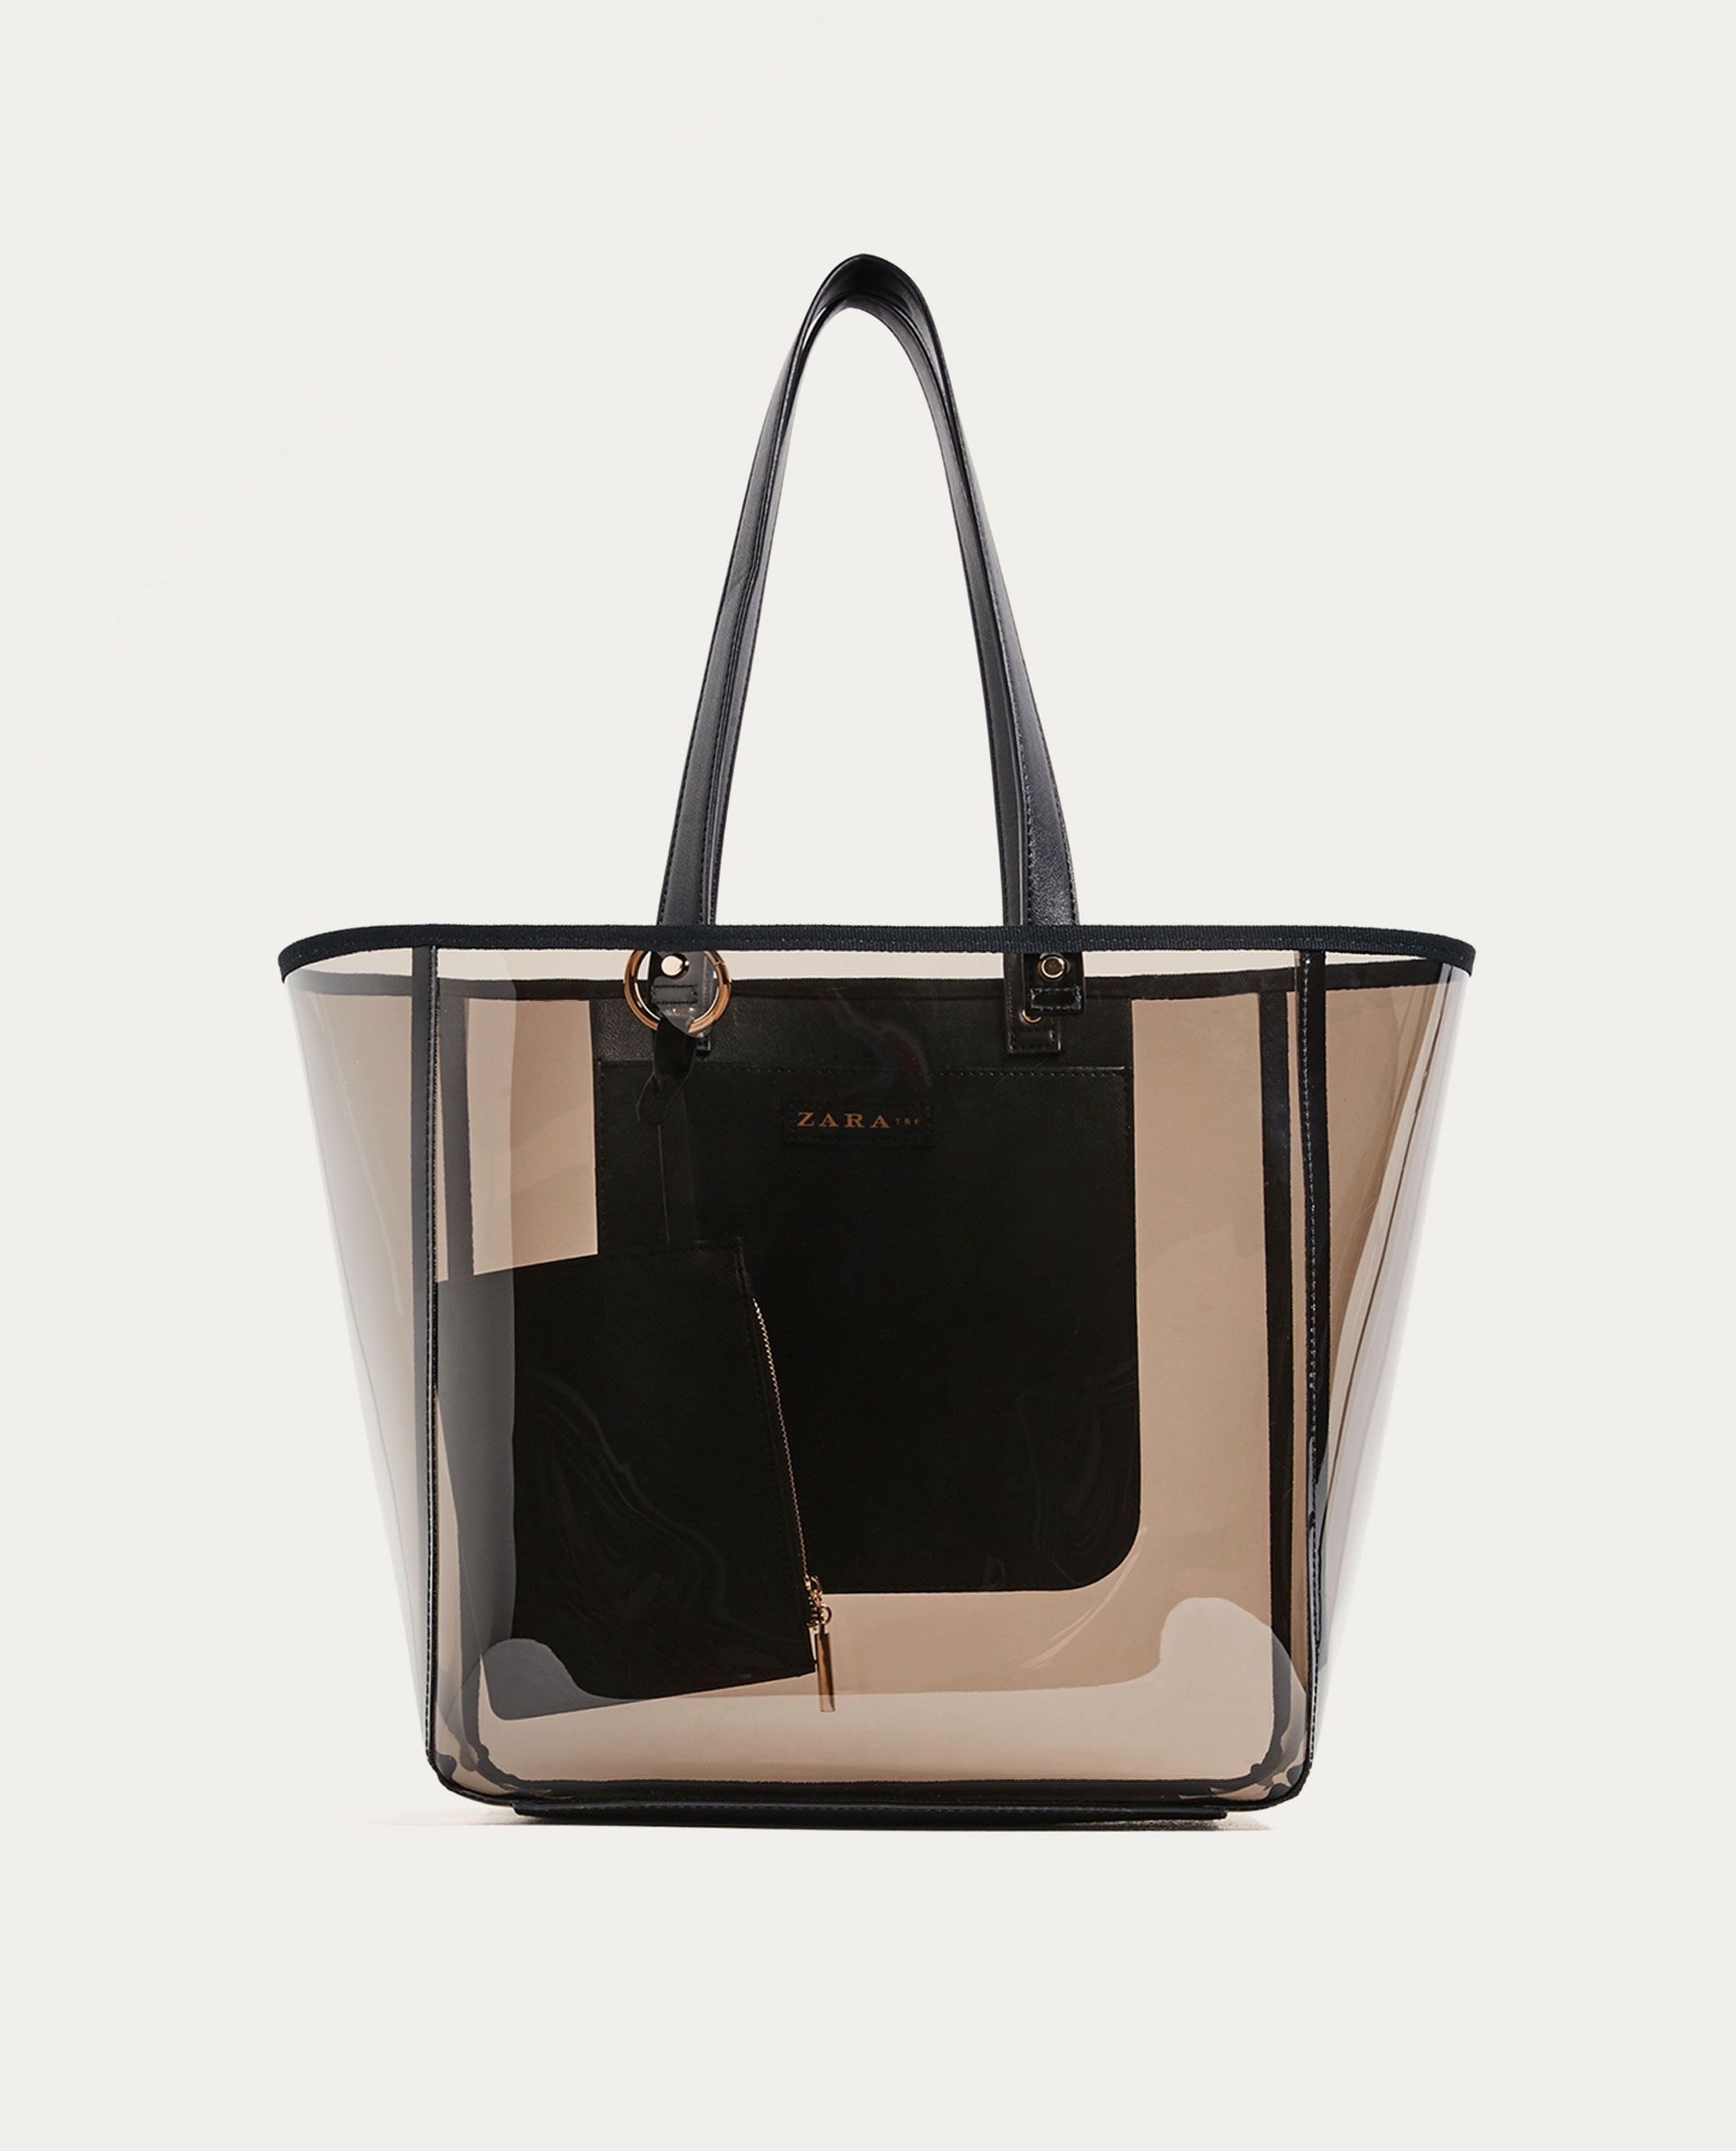 7d5d06d49de6 TRANSPARENT TOTE - NEW IN-TRF